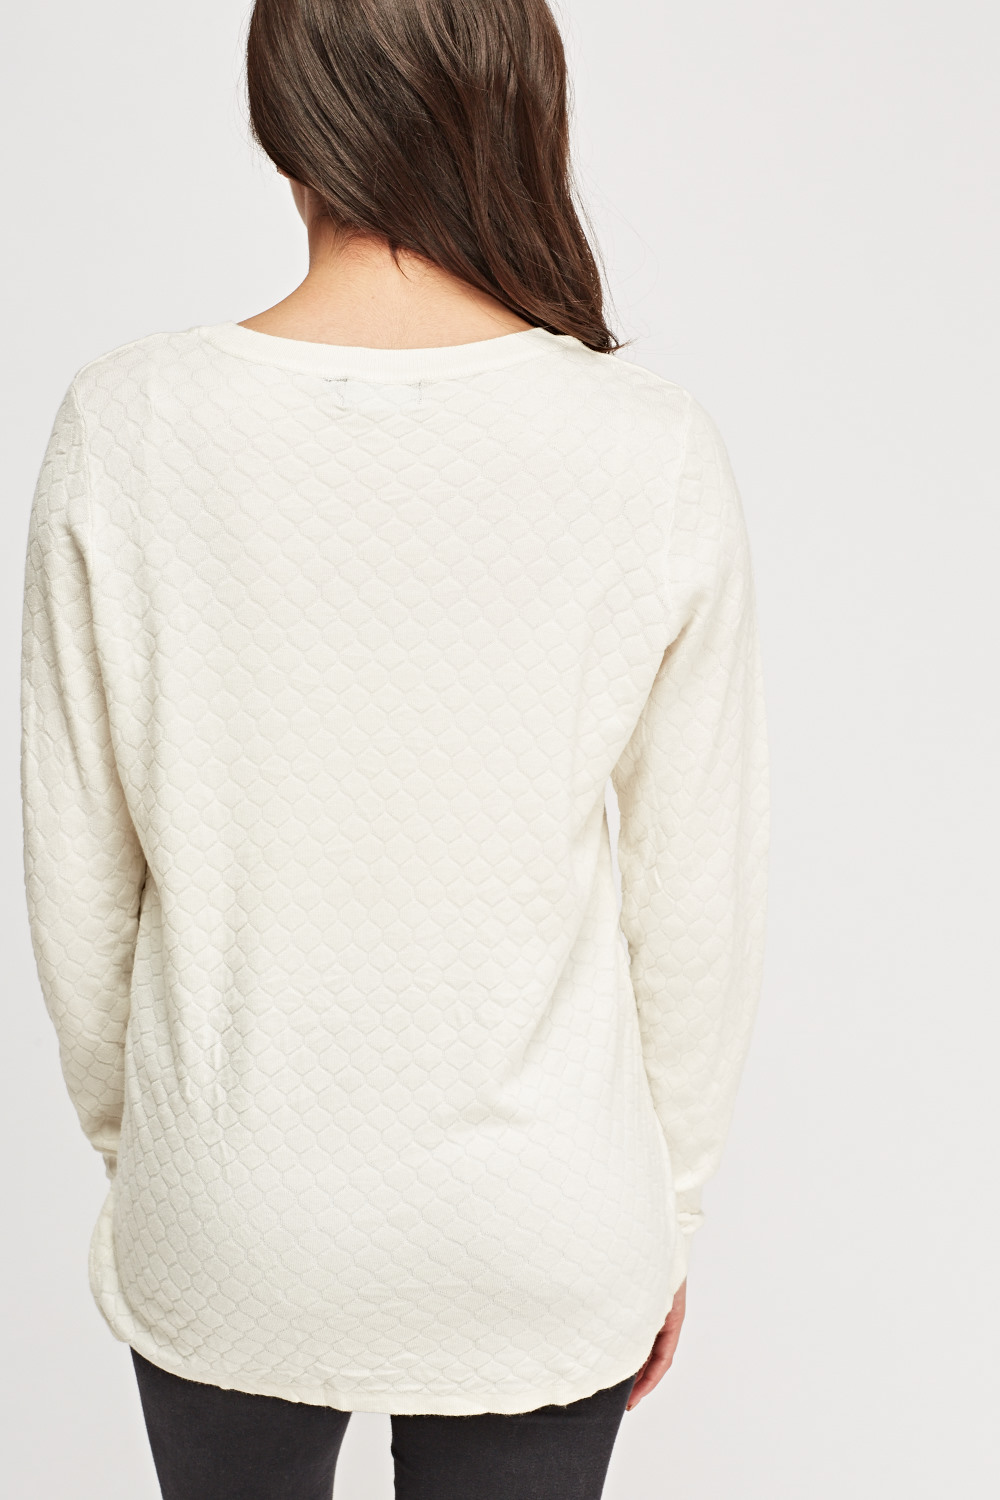 Honeycomb Thin Knitted Sweater Just 163 5